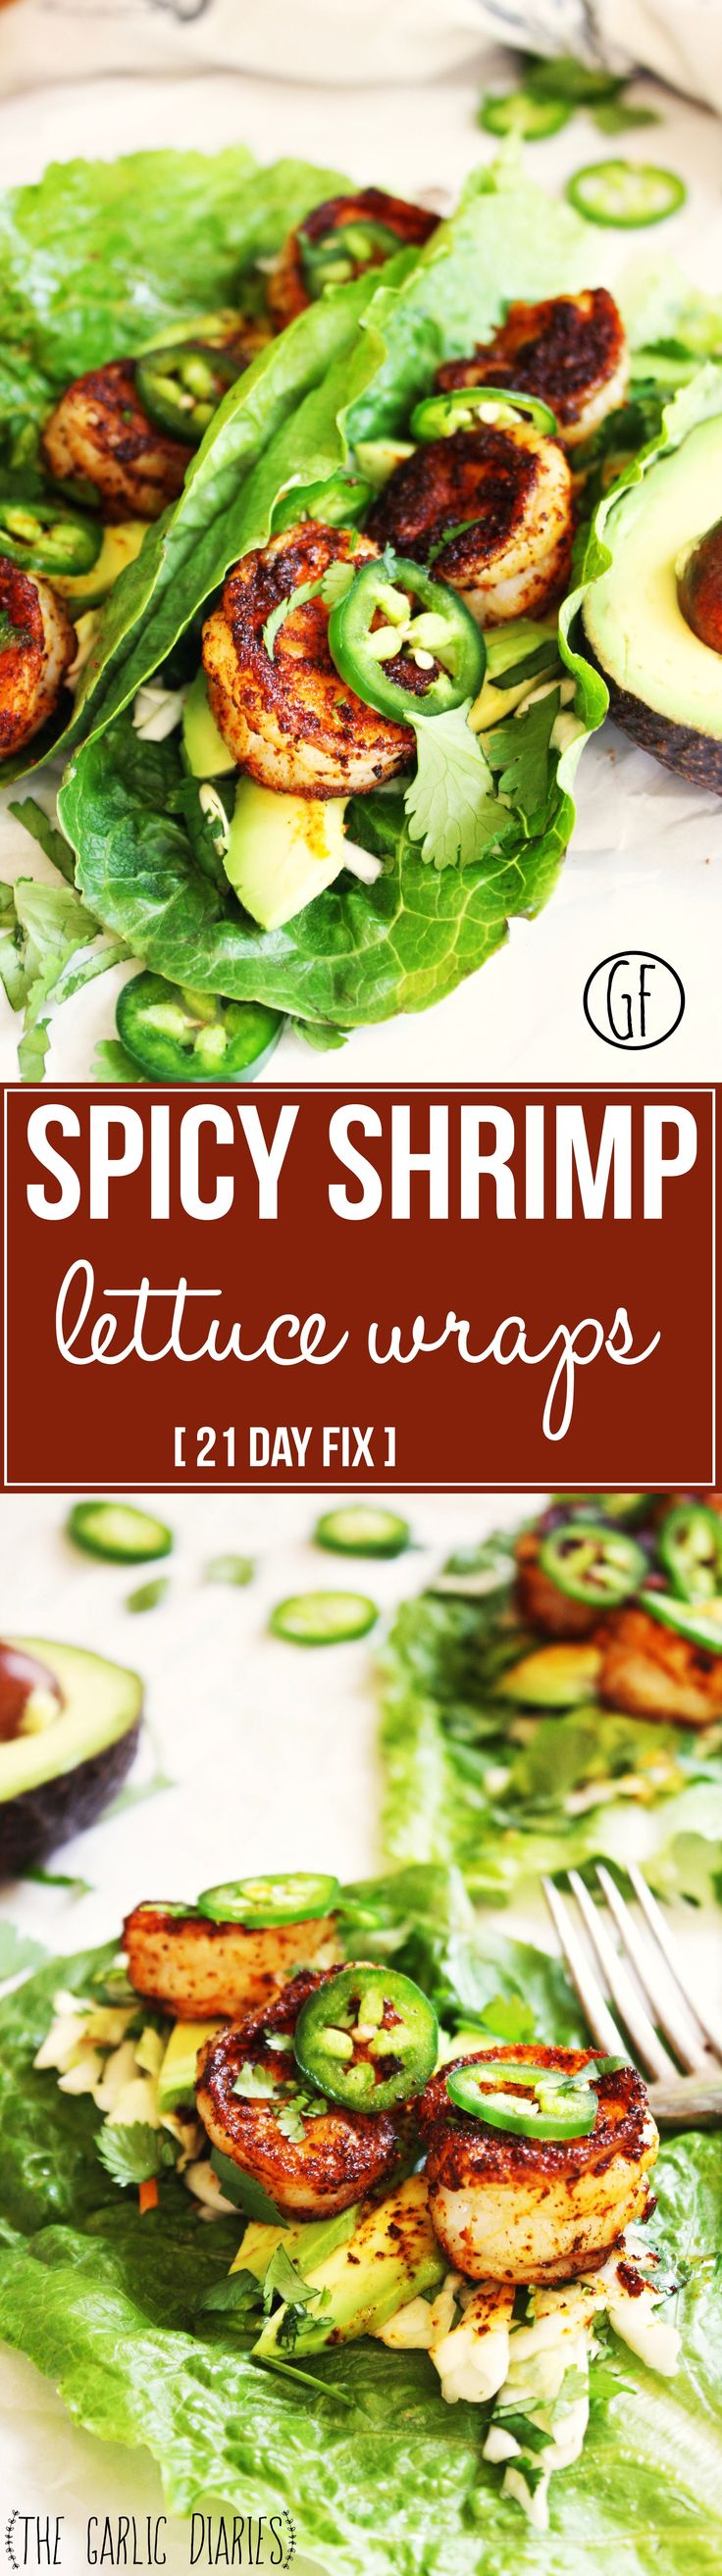 Spicy Shrimp and Avocado Lettuce Wraps [21 Day Fix] - A crispy leaf of romaine lettuce piled high with honey lime slaw, fresh avocado, blackened shrimp, and jalapeños - a flawless combination of flavors and textures! #glutenfree #21dayfix TheGarlicDiaries.com